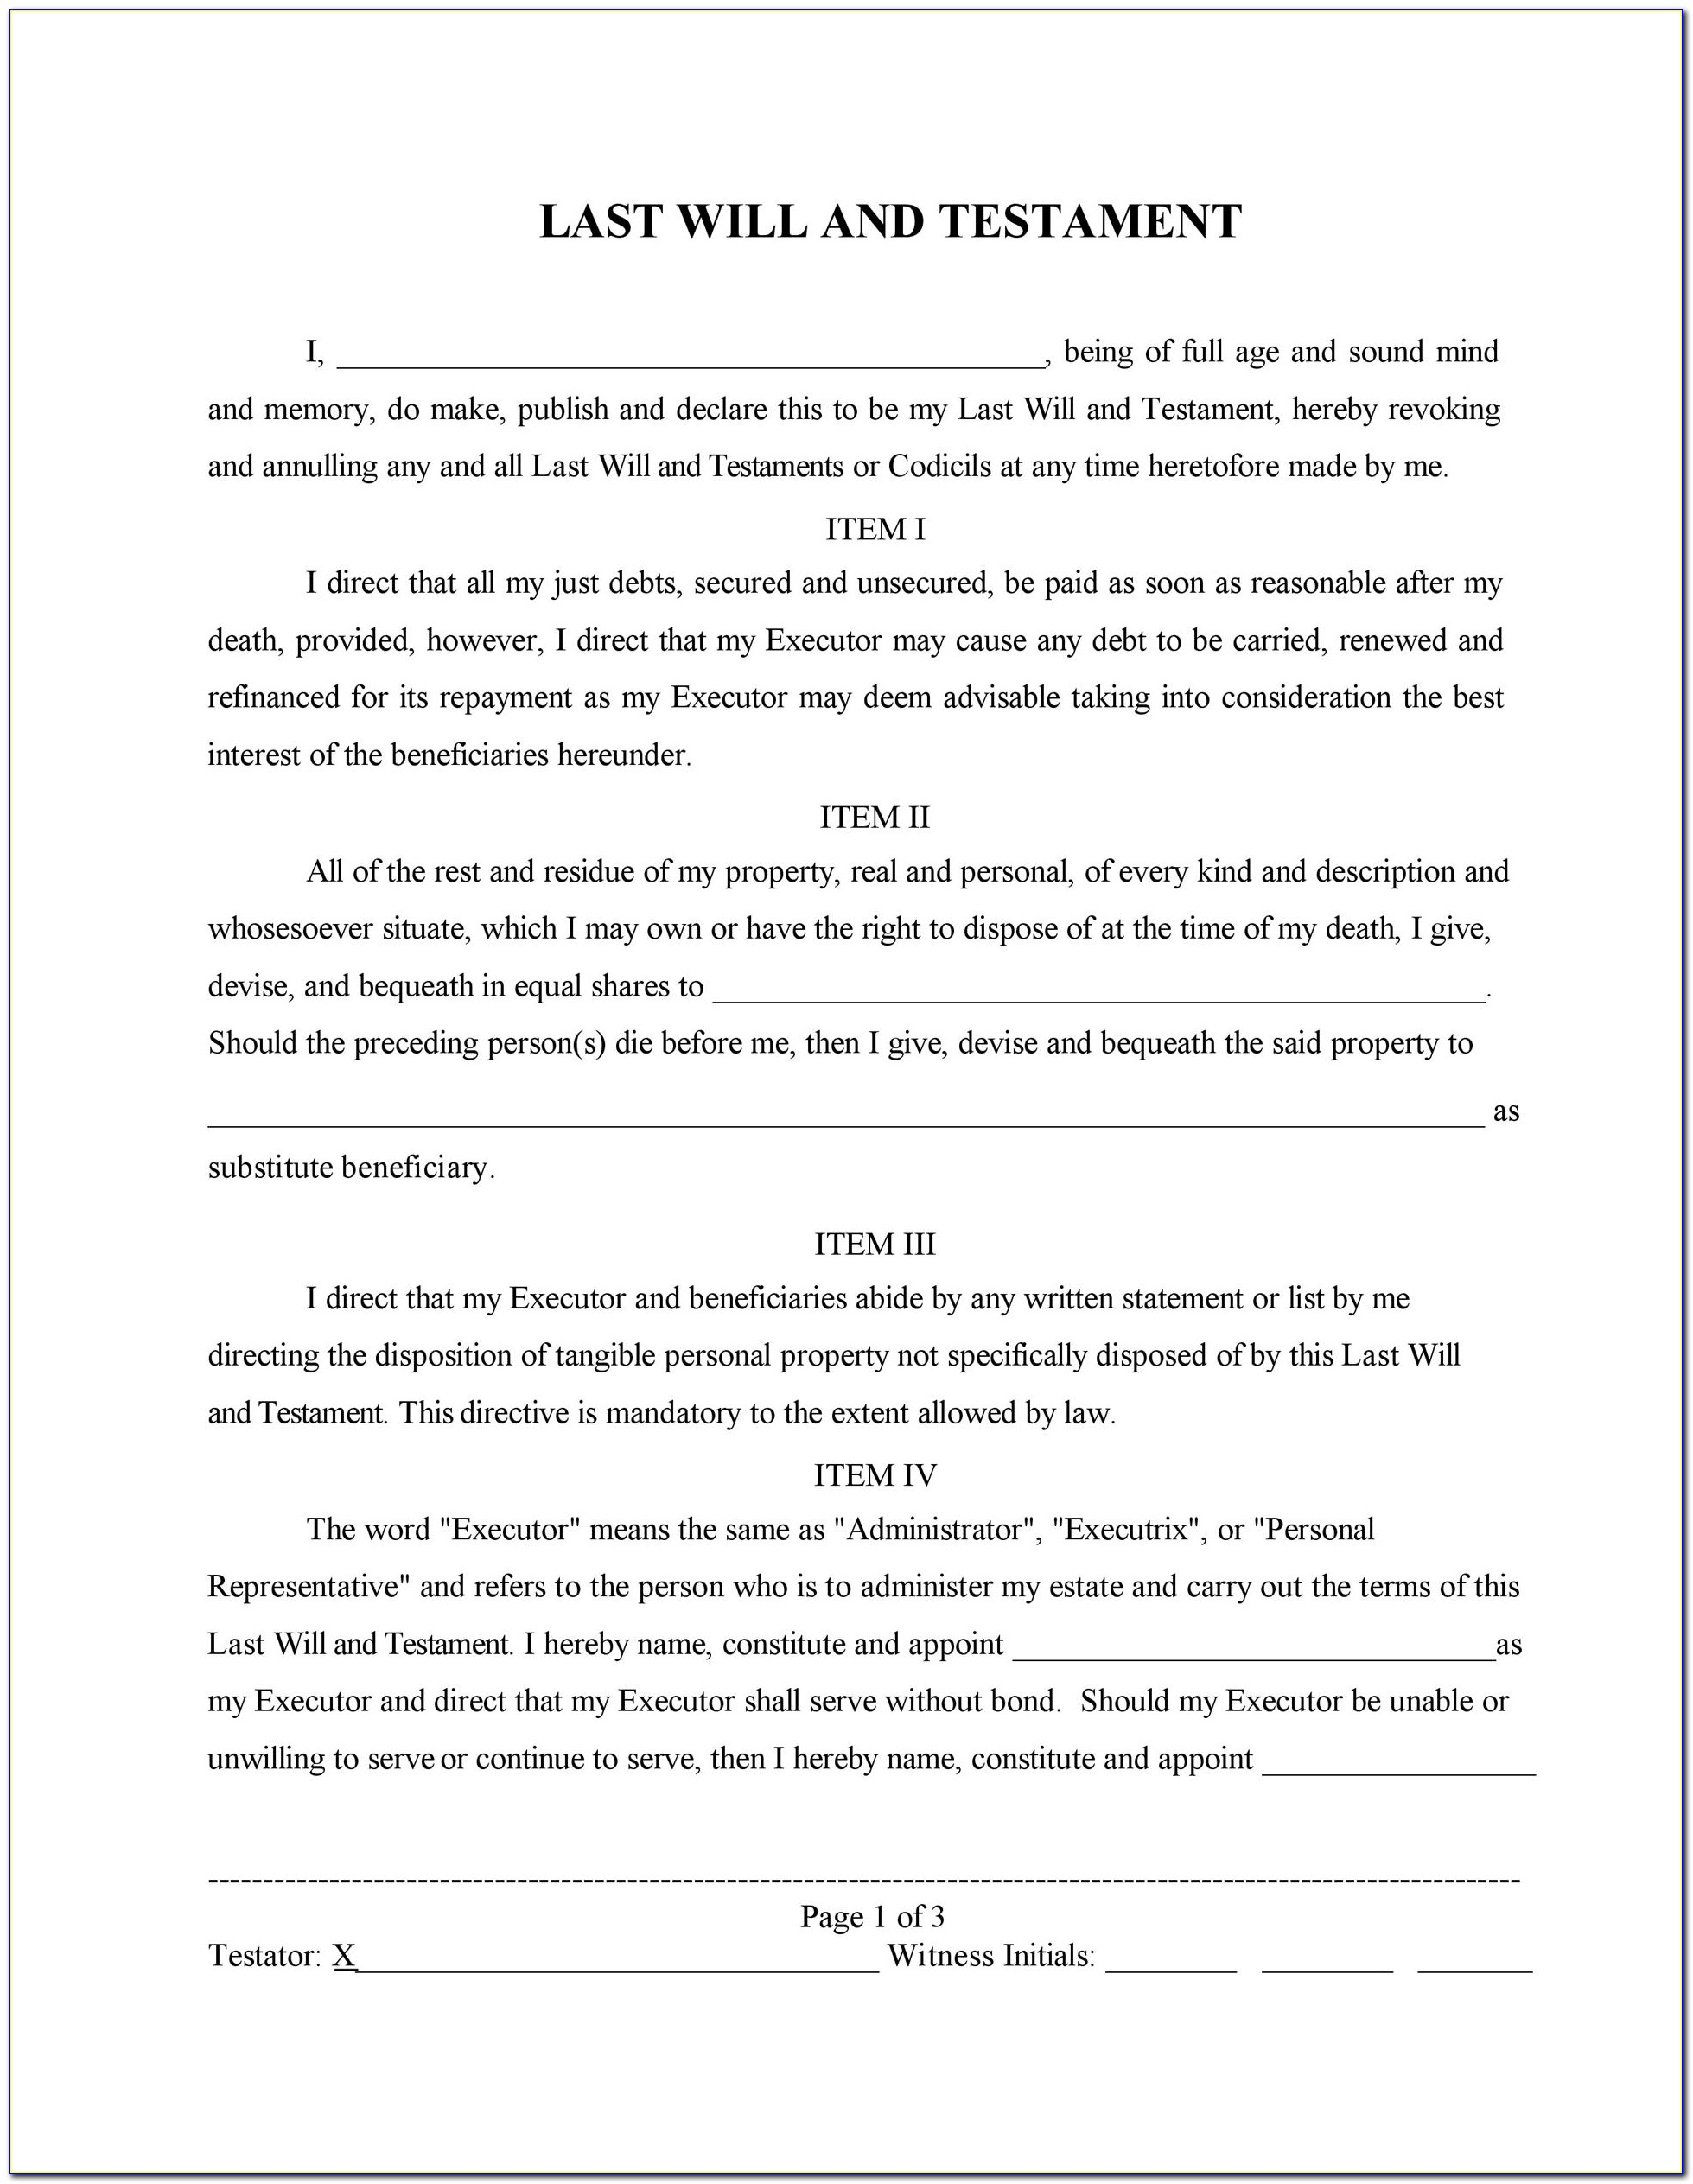 Last Will And Testament Word Template South Africa